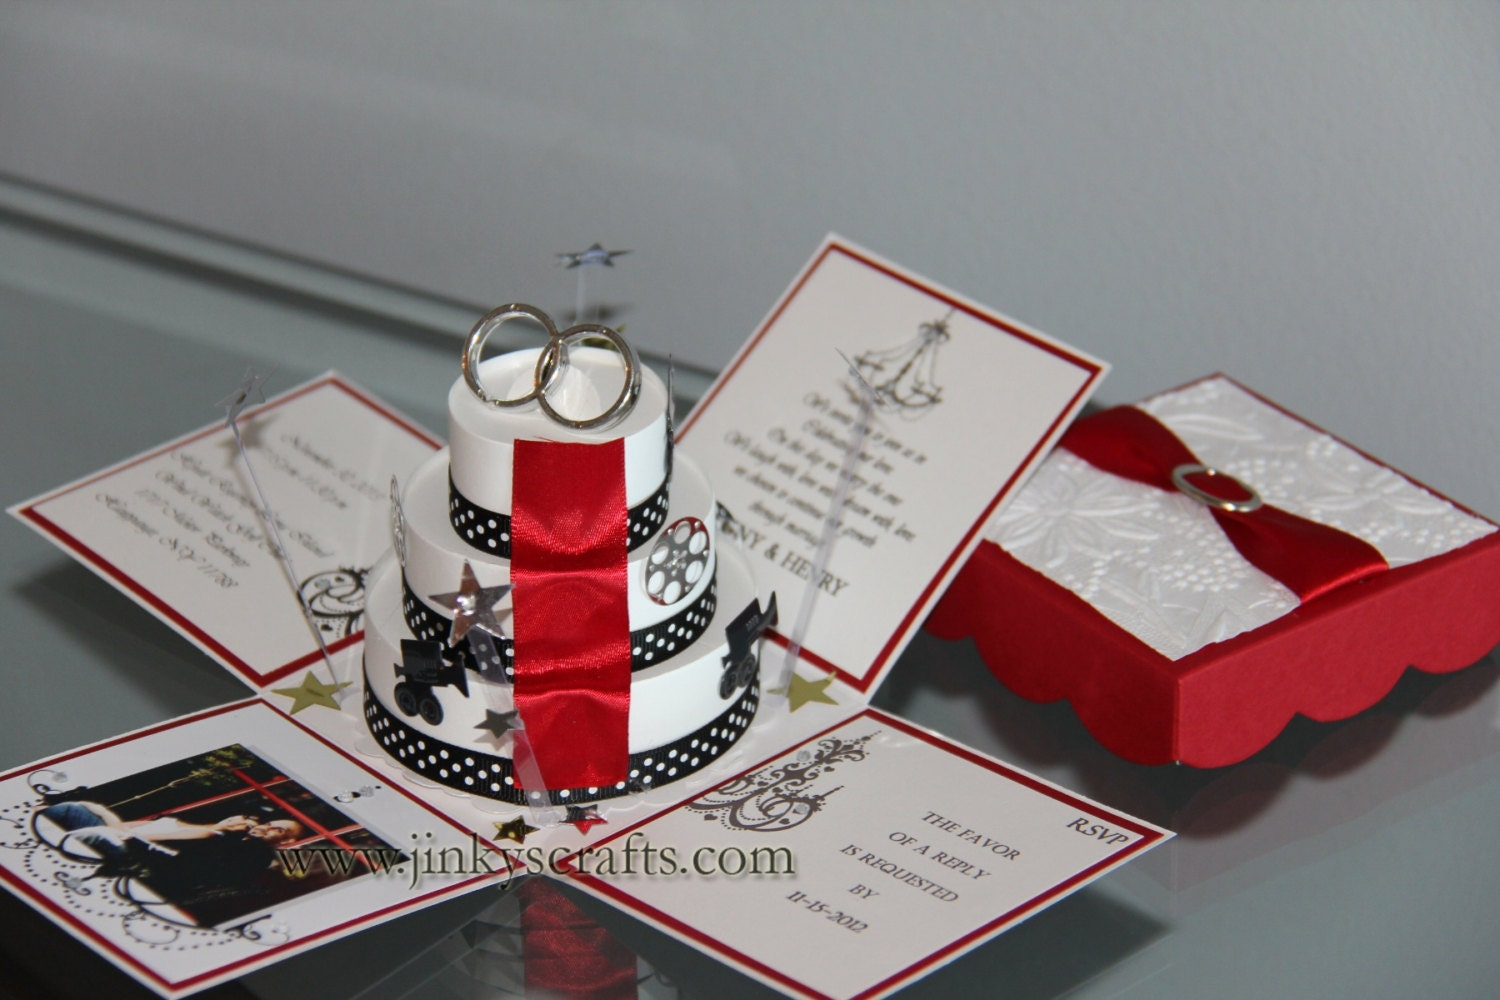 Wedding Invitation In A Box: Hollywood Inspired Exploding Box Wedding By Jinkyscrafts